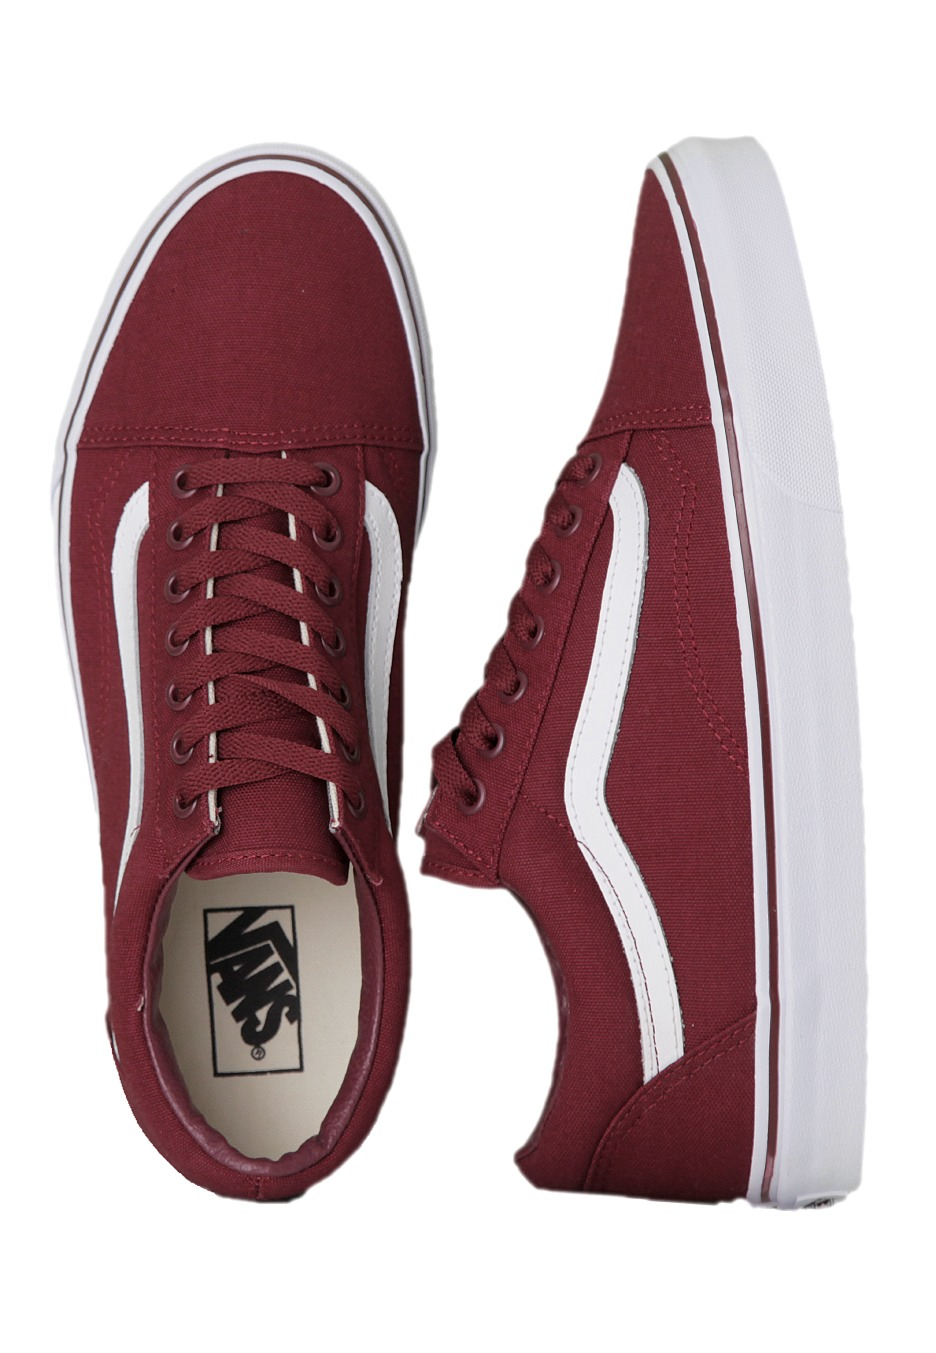 ff5b77e735 Vans - Old Skool Canvas Cordovan True White - Shoes - Impericon.com US